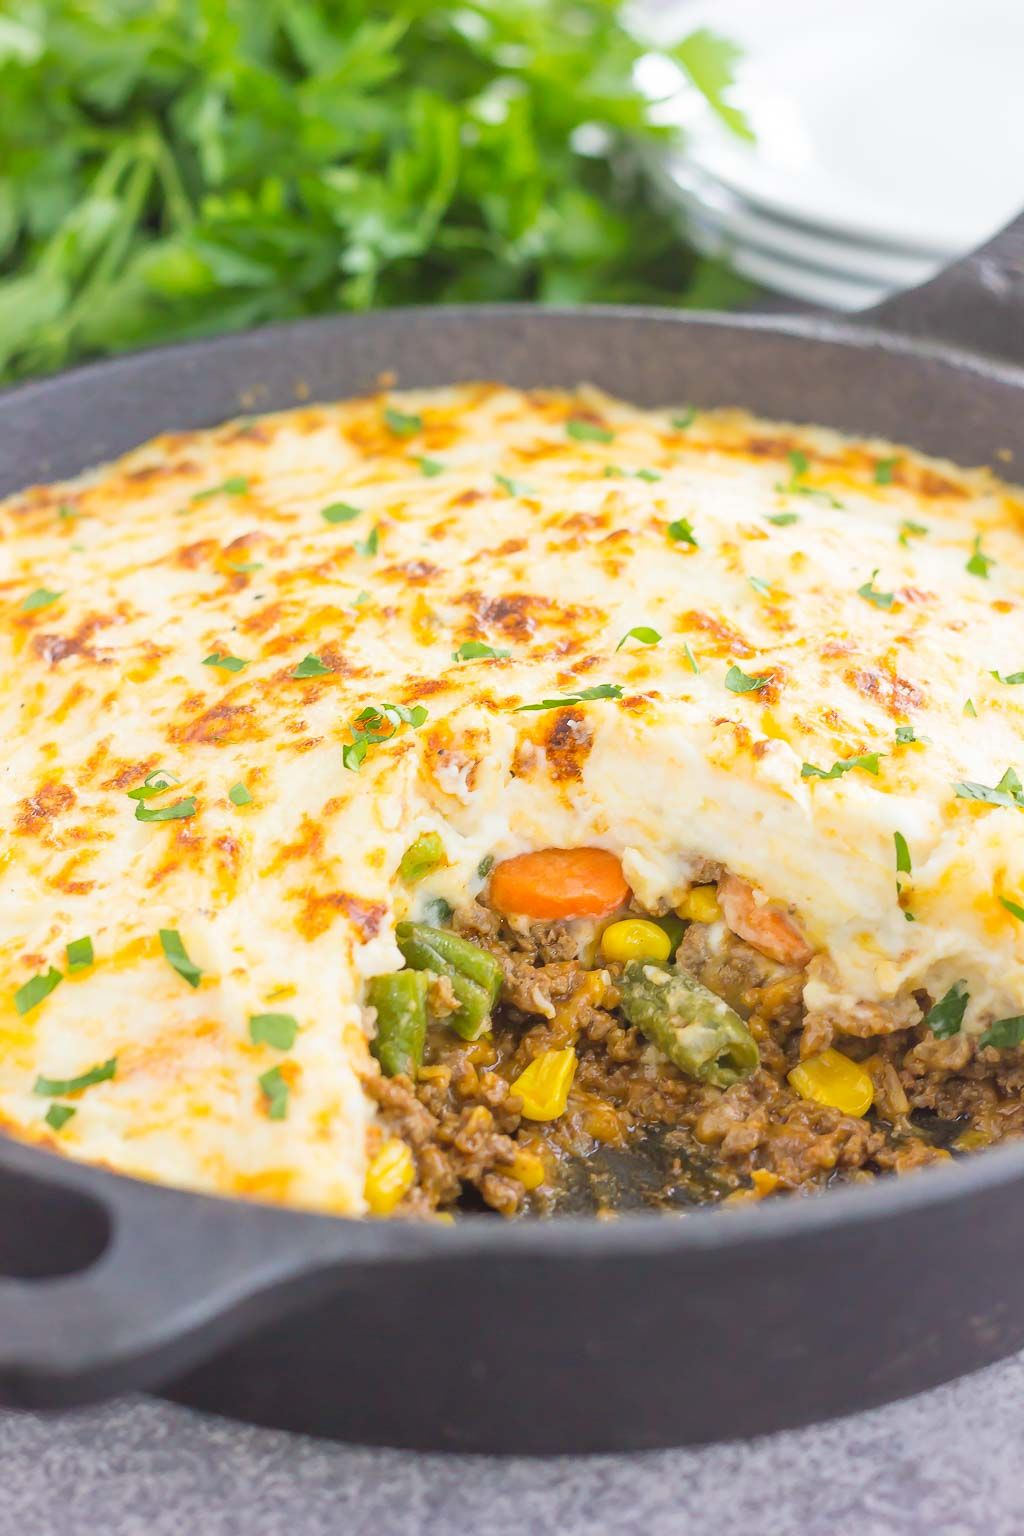 This Easy Shepherd S Pie Features A Unique Spin On The Classic Version And Is Ready In Less Than 20 Minutes Loaded With Zesty Ground Beef Recipes Food Cooking